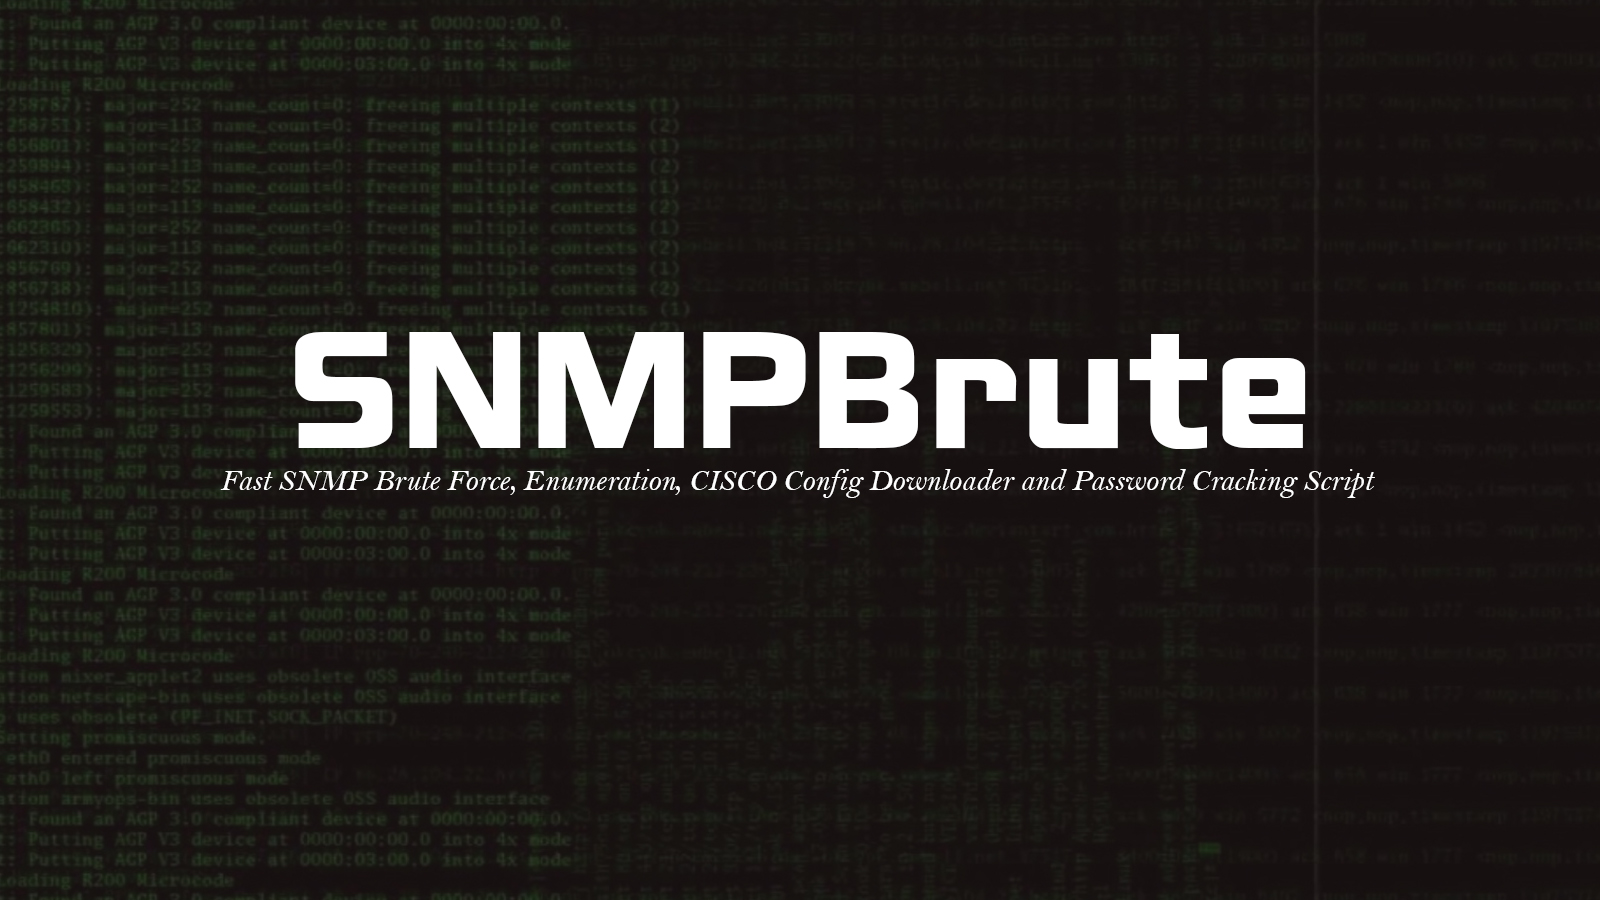 SNMPBrute - Fast SNMP Brute Force, Enumeration, CISCO Config Downloader and Password Cracking Script